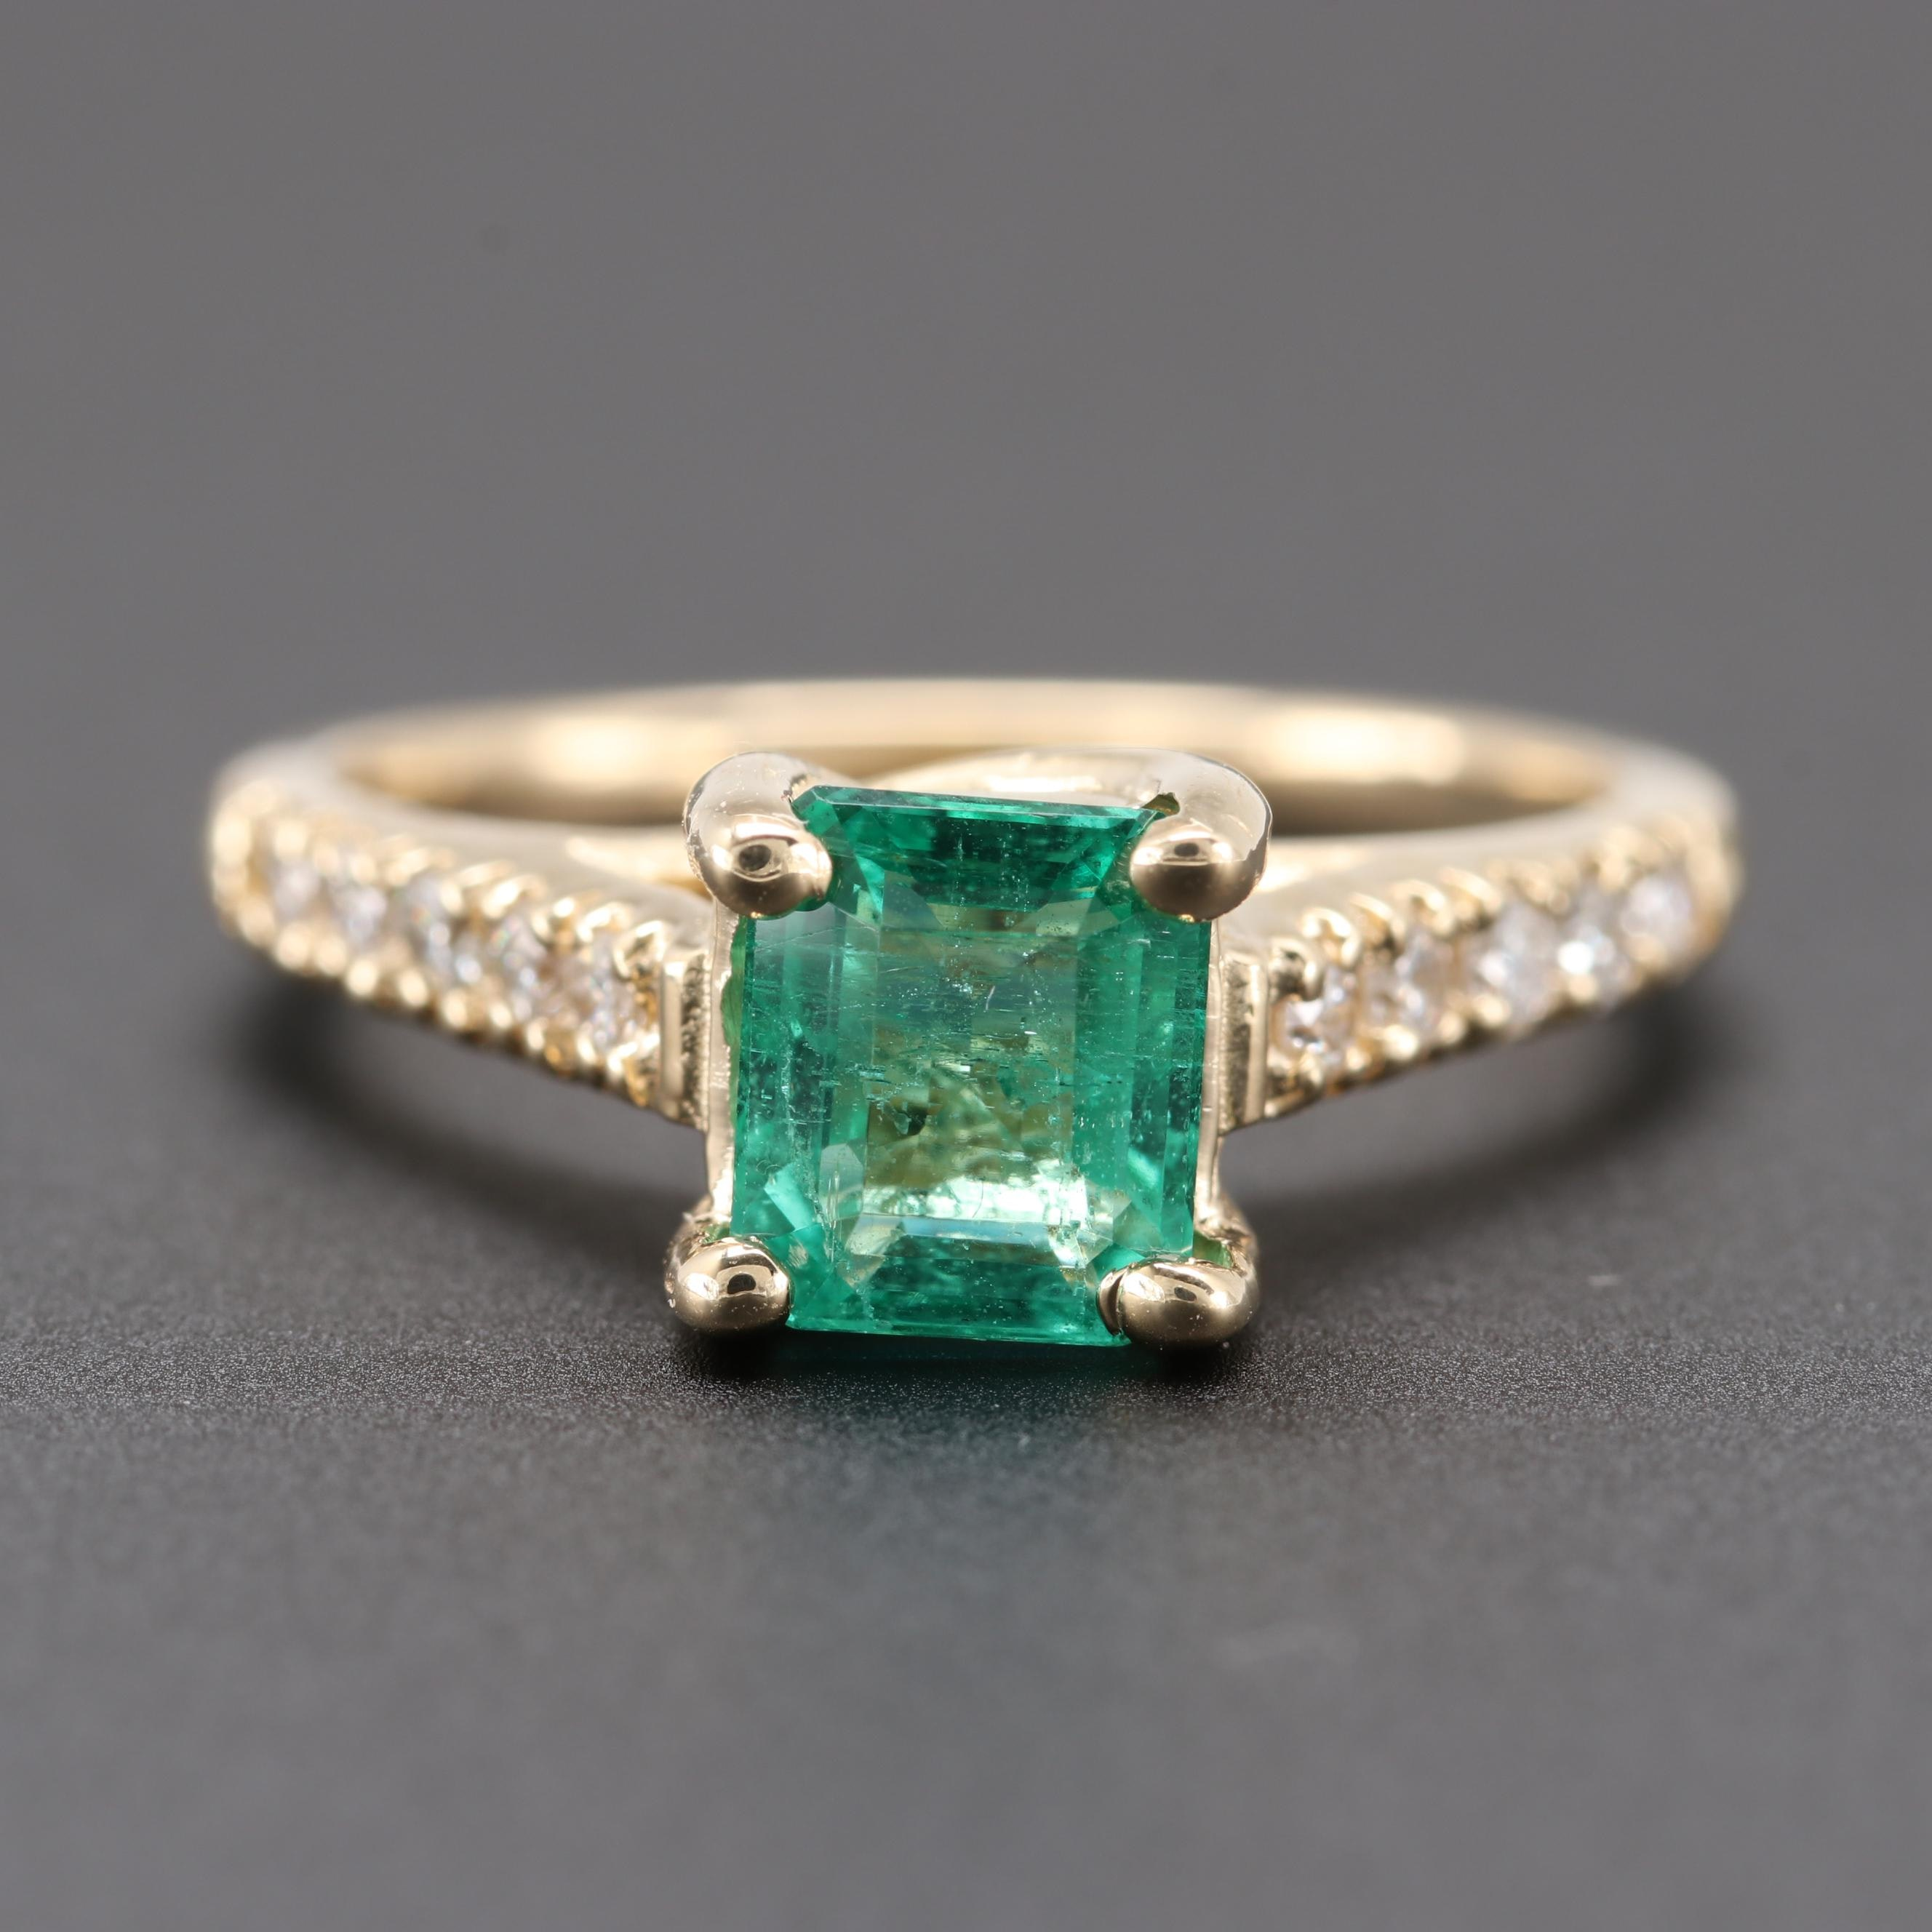 14K Yellow Gold 1.10 CT Emerald and Diamond Ring